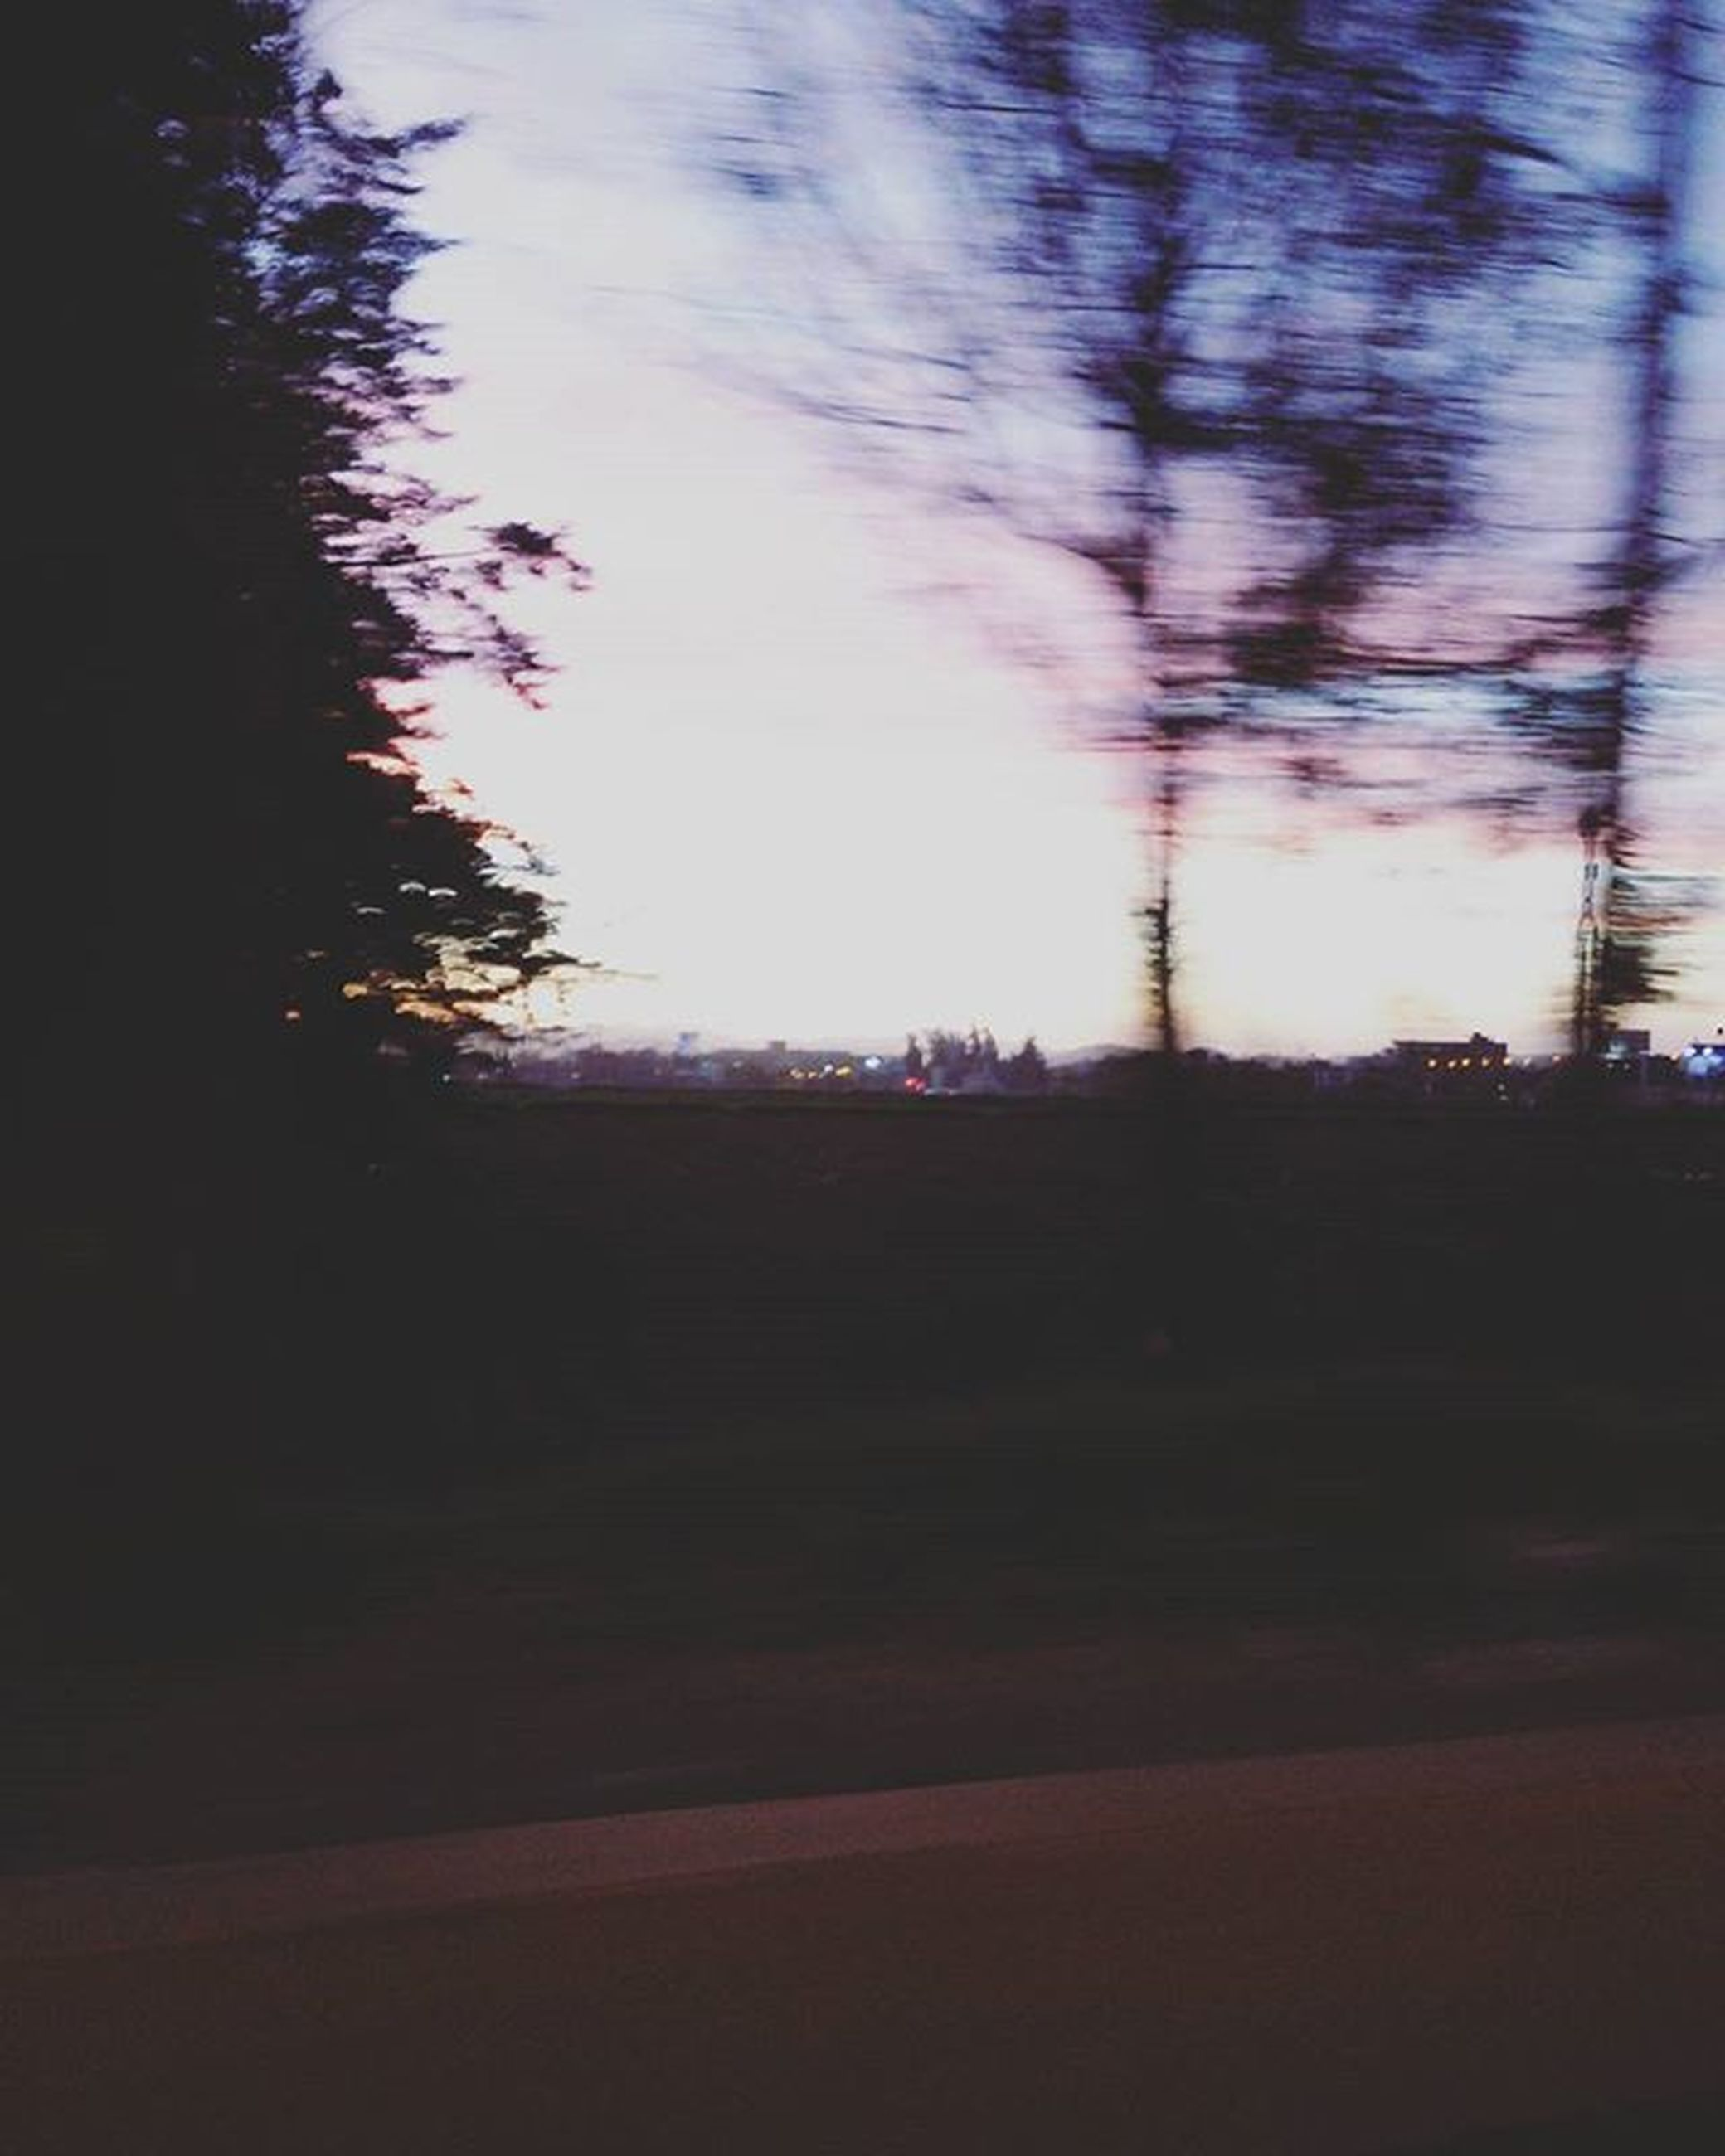 tree, silhouette, road, sky, tranquility, dark, tranquil scene, bare tree, transportation, dusk, nature, street, sunset, the way forward, no people, scenics, outdoors, night, empty, beauty in nature